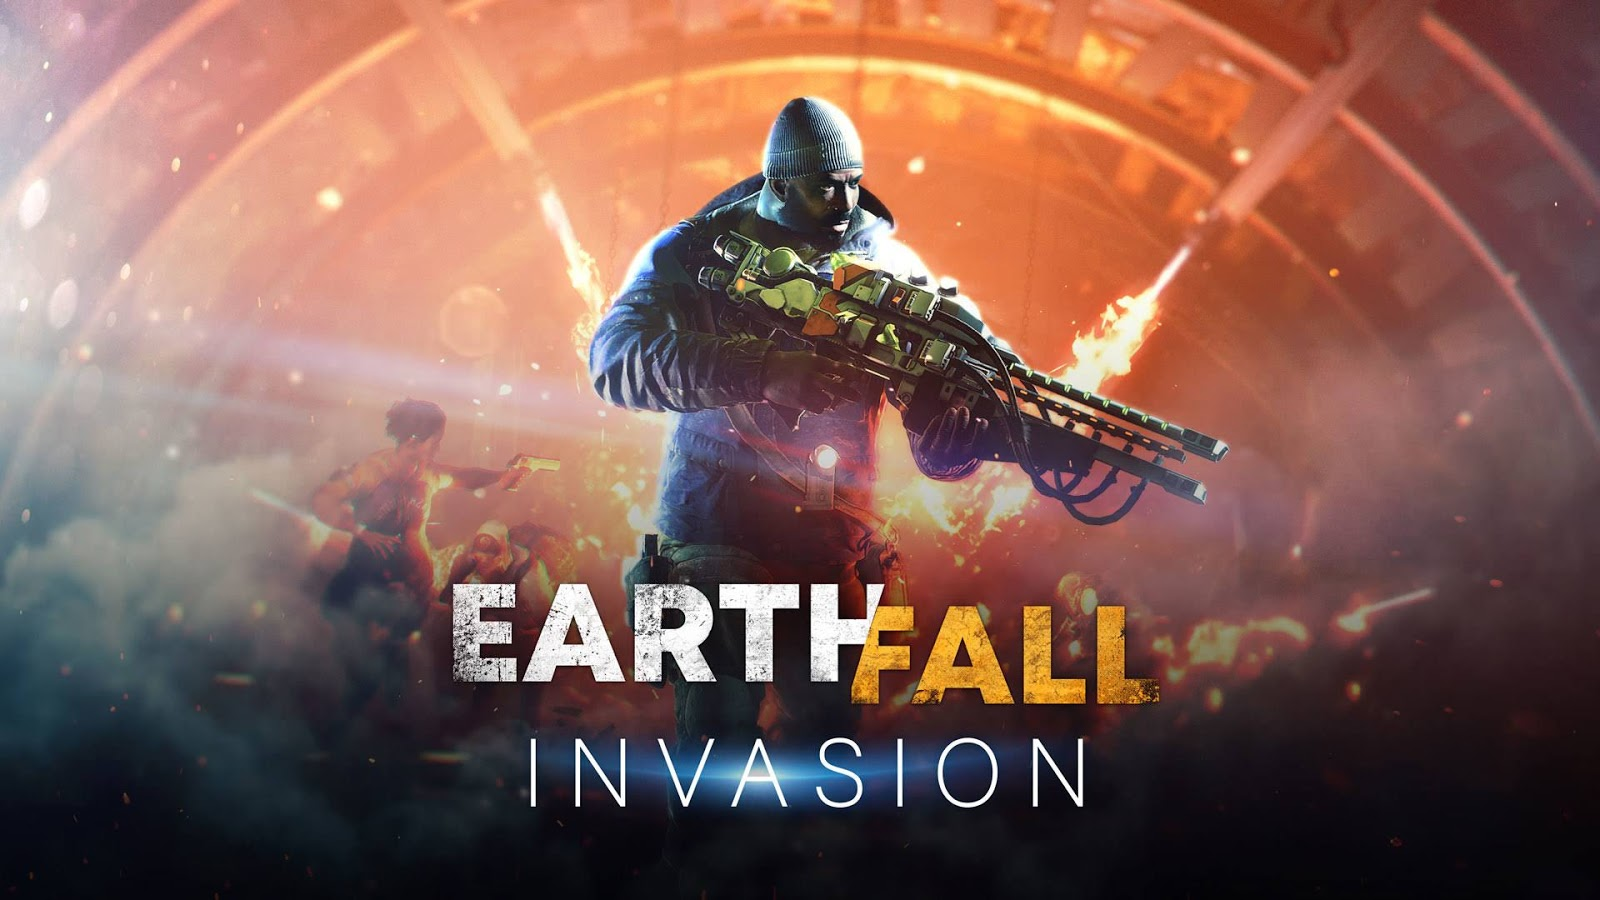 earthfall-invasion-online-multiplayer